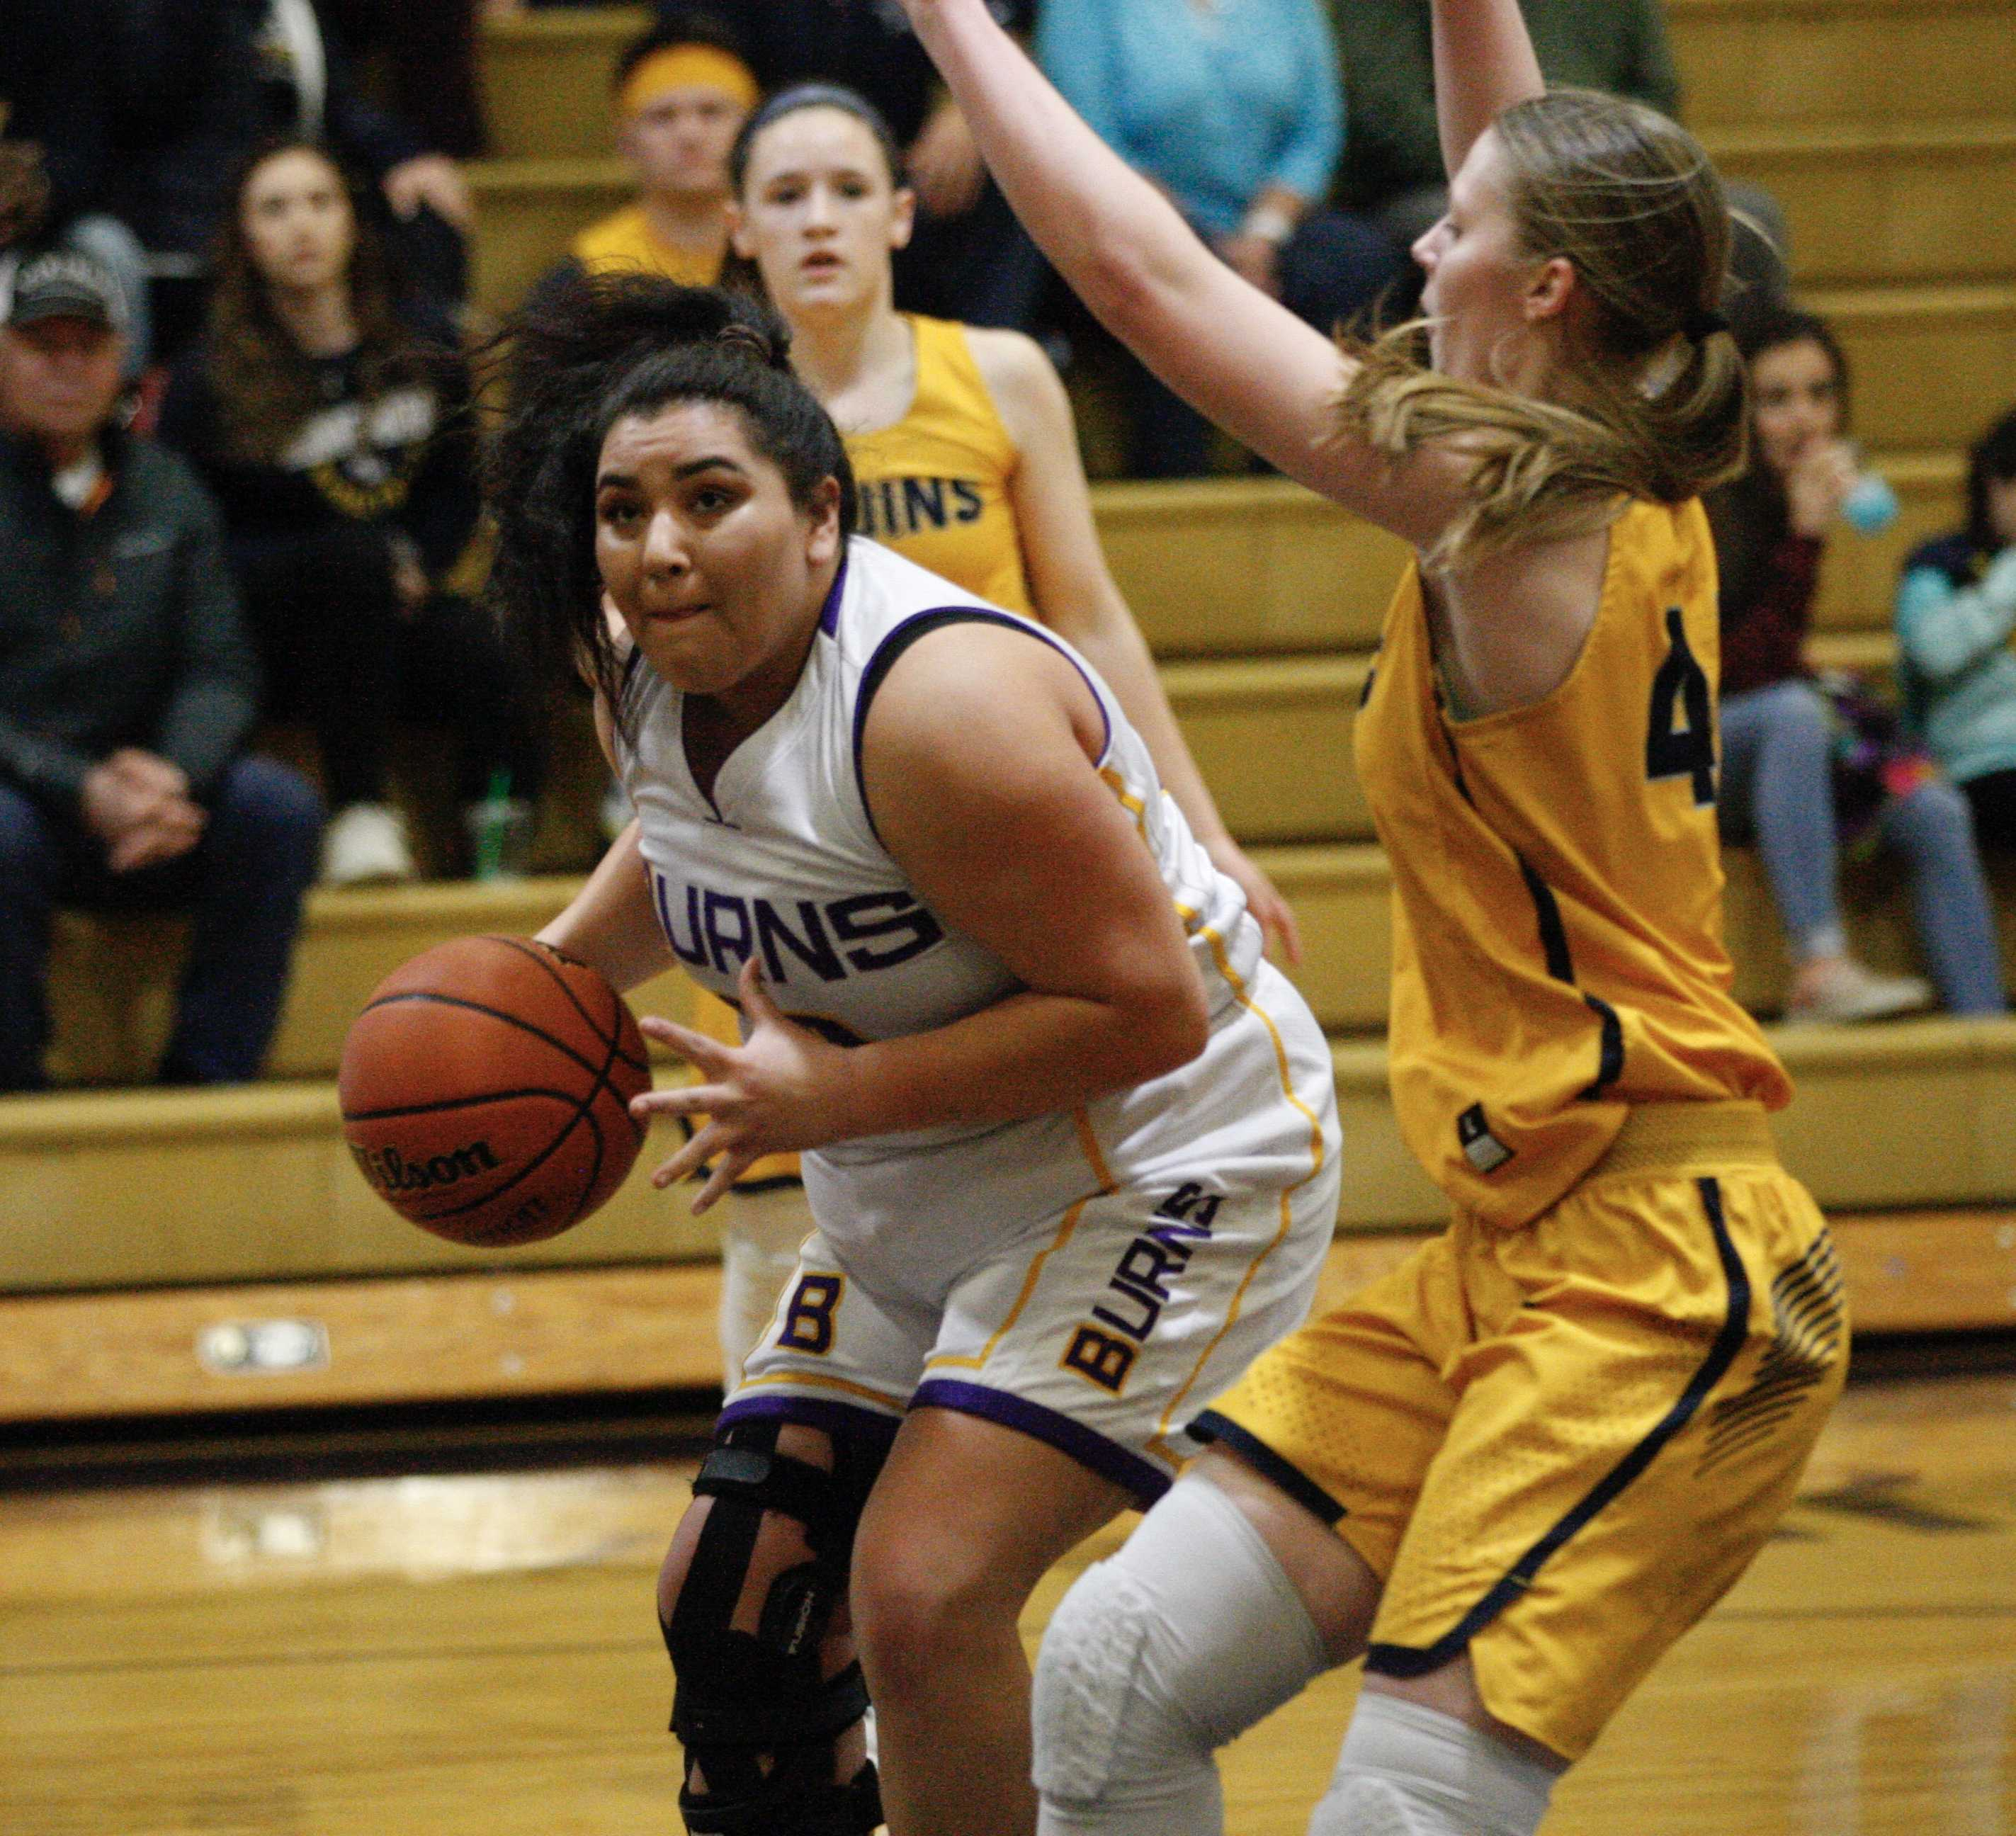 Burns forward Maliah Skunkcap muscles past the defense of Brookings-Harbor's Chloe McCrae. (Photo by Norm Maves. Jr.)